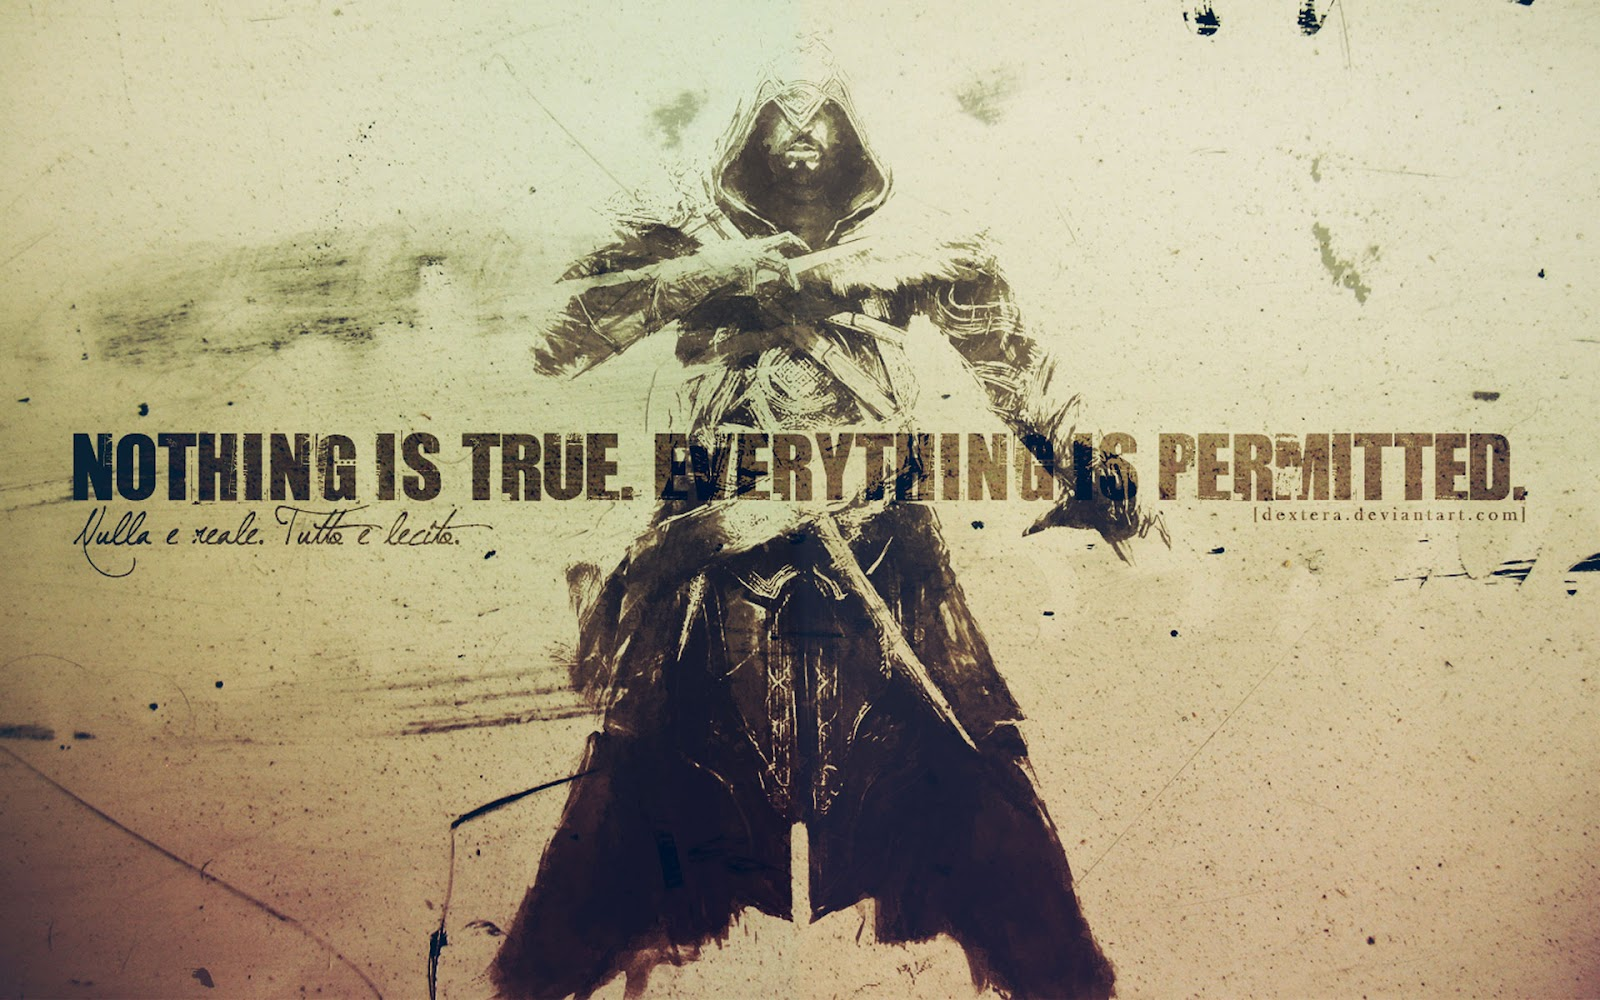 http://3.bp.blogspot.com/-0lpIGnnFzE0/T_pa-ZF5N5I/AAAAAAAAB80/w0wmEMt4WGM/s1600/Assassin%27s+Creed+Revelations+HD+HQ+Wallpapers%7Bfreehqwallpapers.blogspot.com%7D+%281%29.jpg